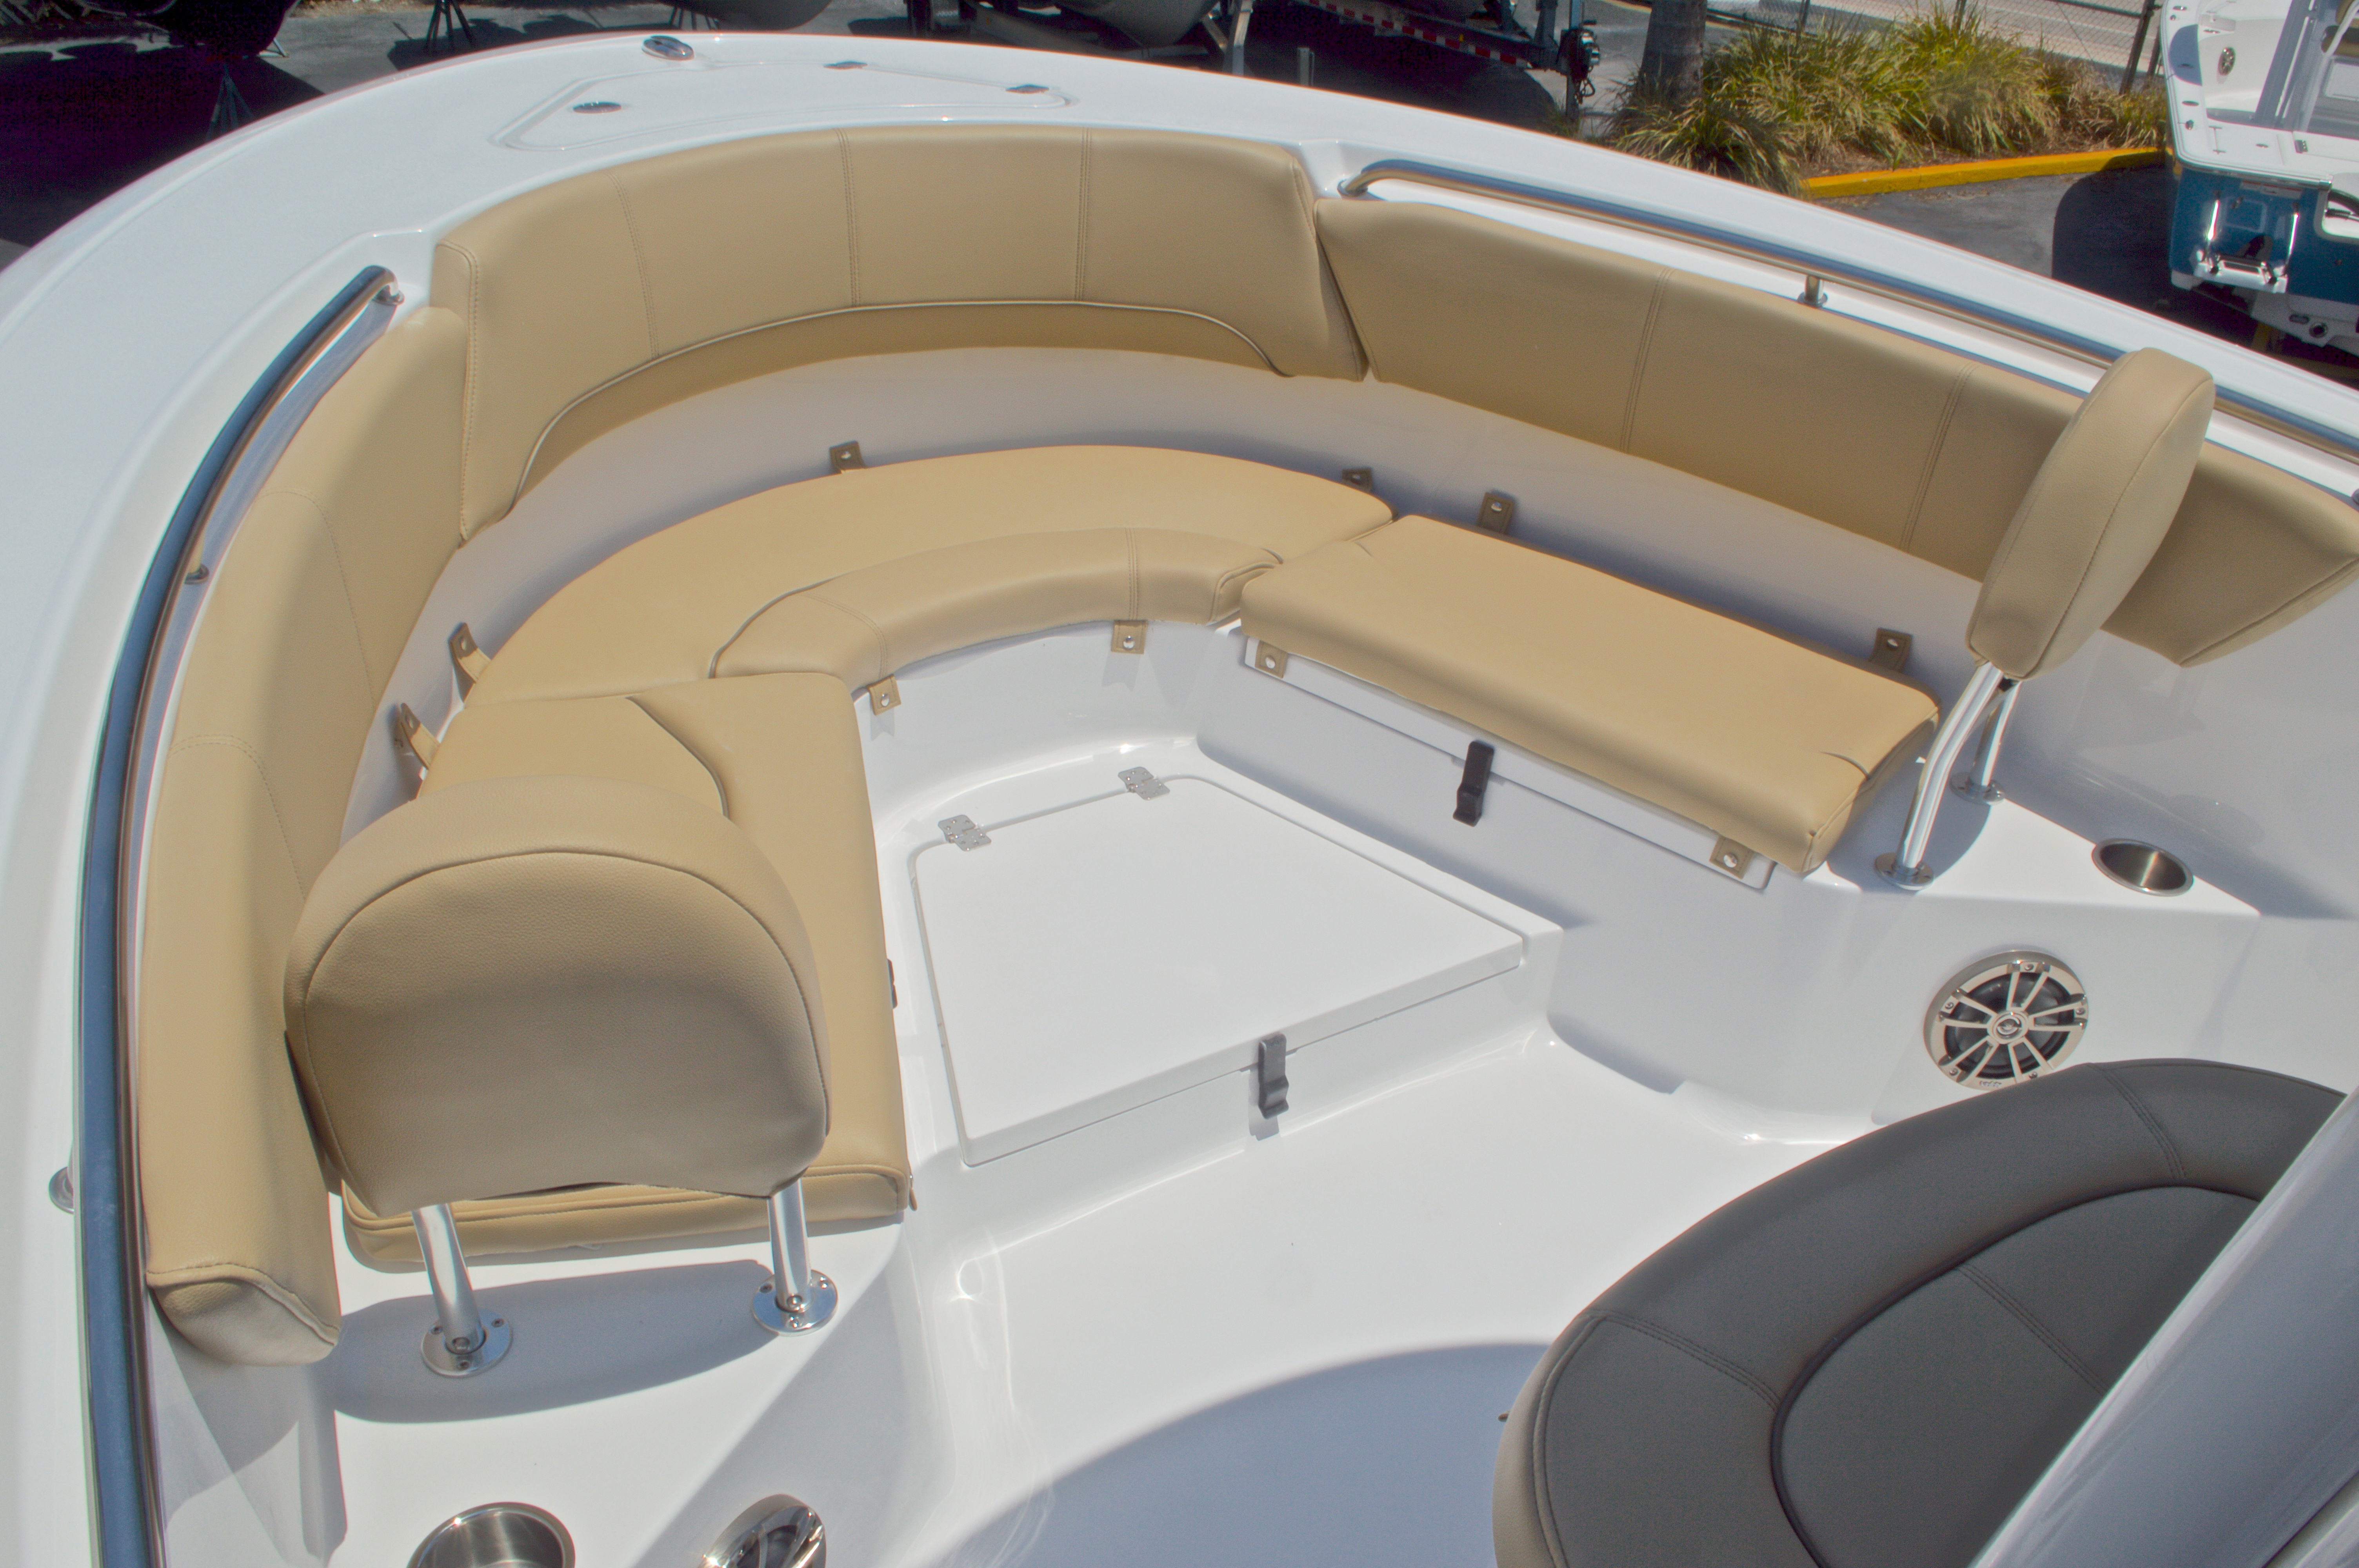 Thumbnail 33 for New 2016 Sportsman Heritage 231 Center Console boat for sale in West Palm Beach, FL